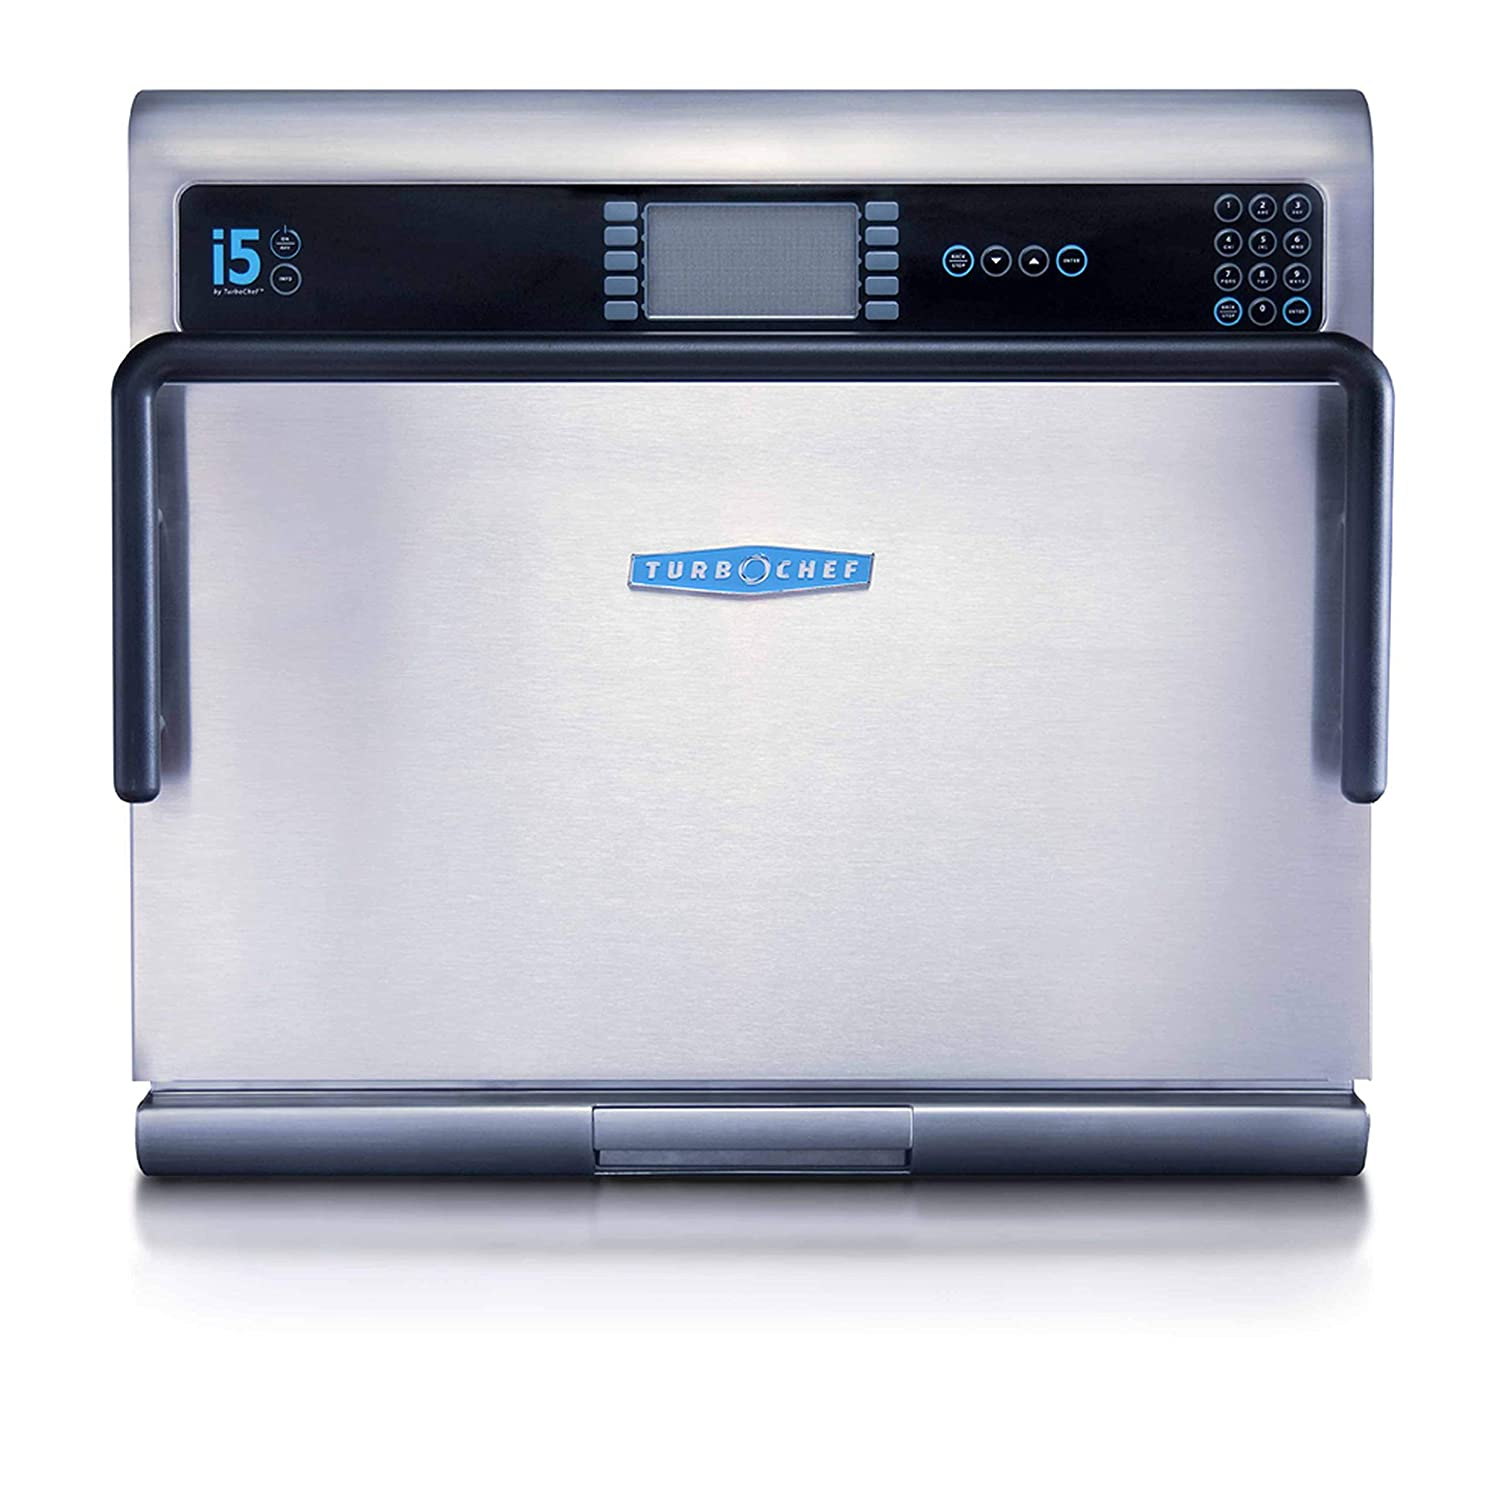 Turbochef I5 Convection Microwave Rapid Cook Oven, Electric, Ventless, Counterto